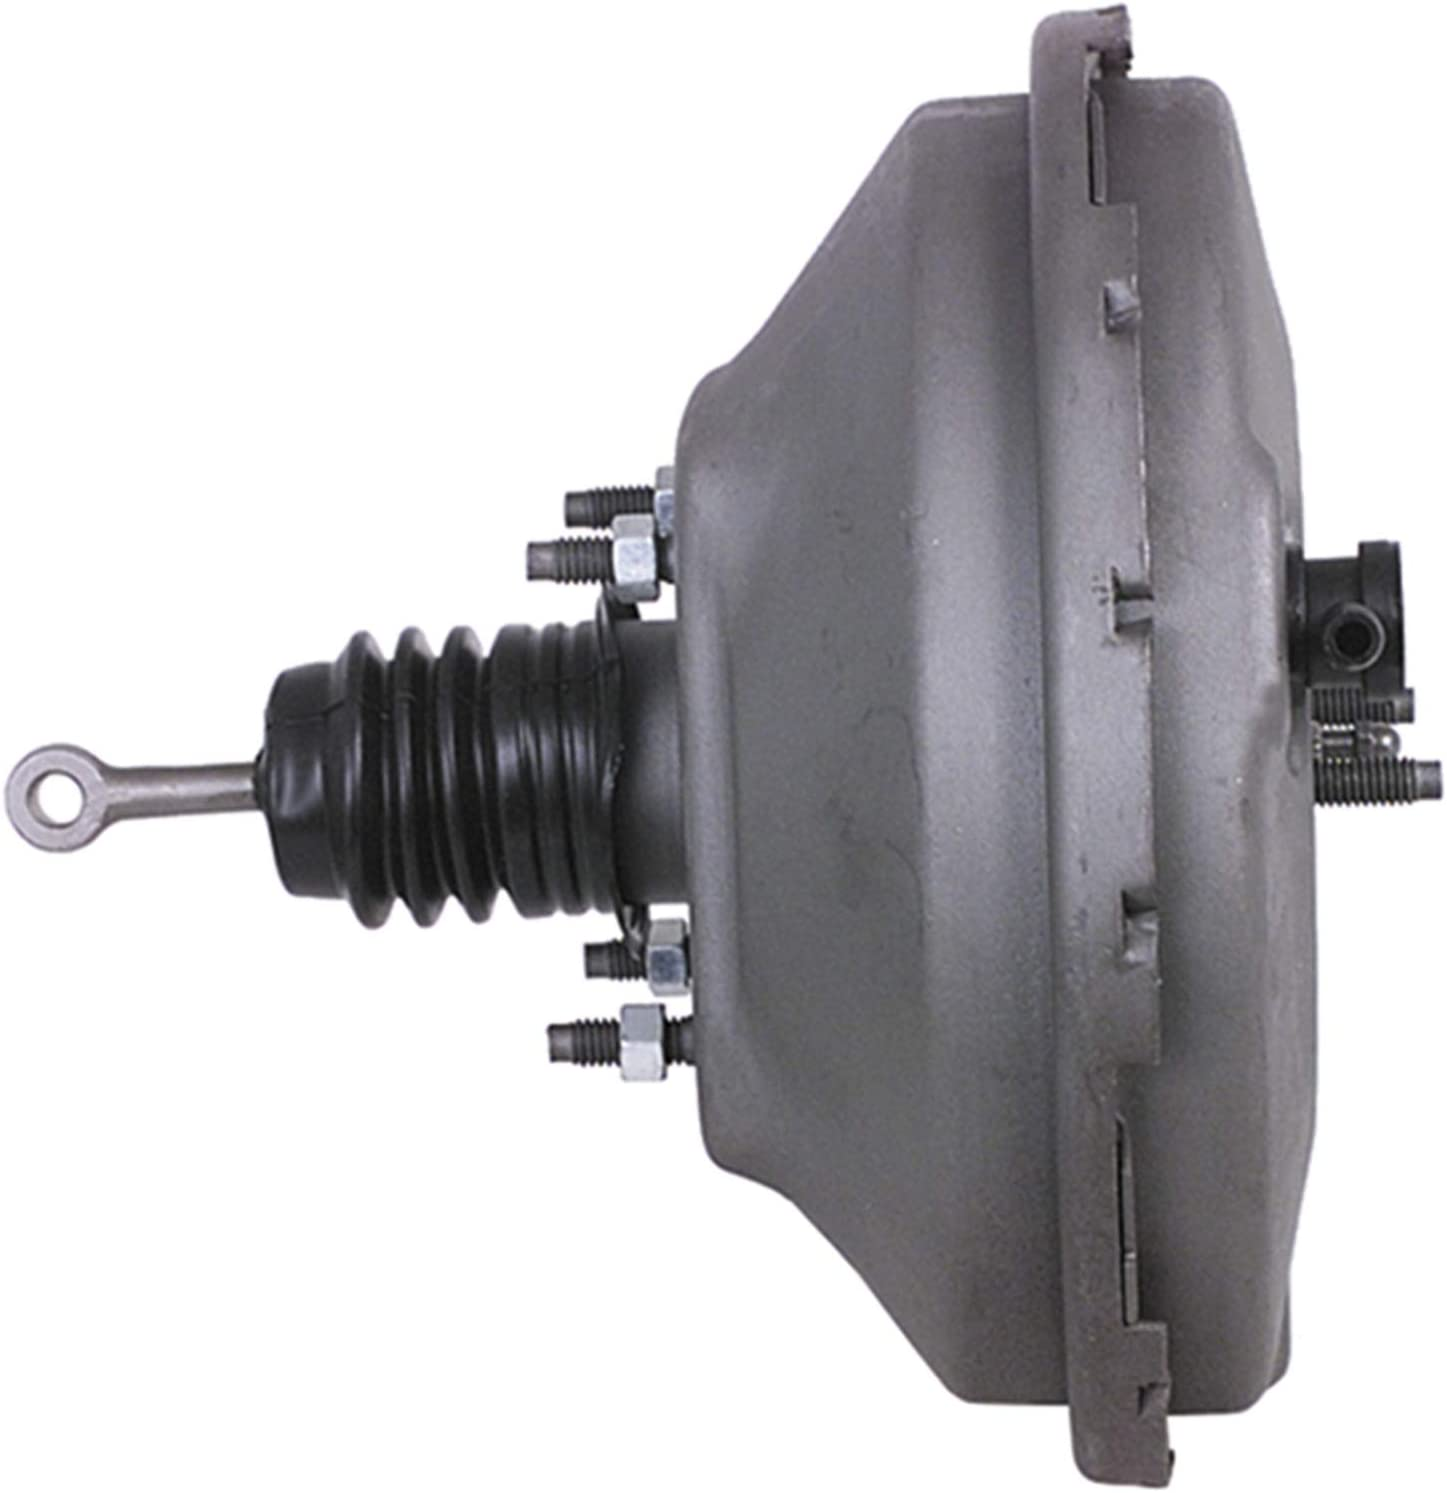 Cardone 54-73709 Remanufactured Vacuum trust Brake Power witho Booster Direct stock discount